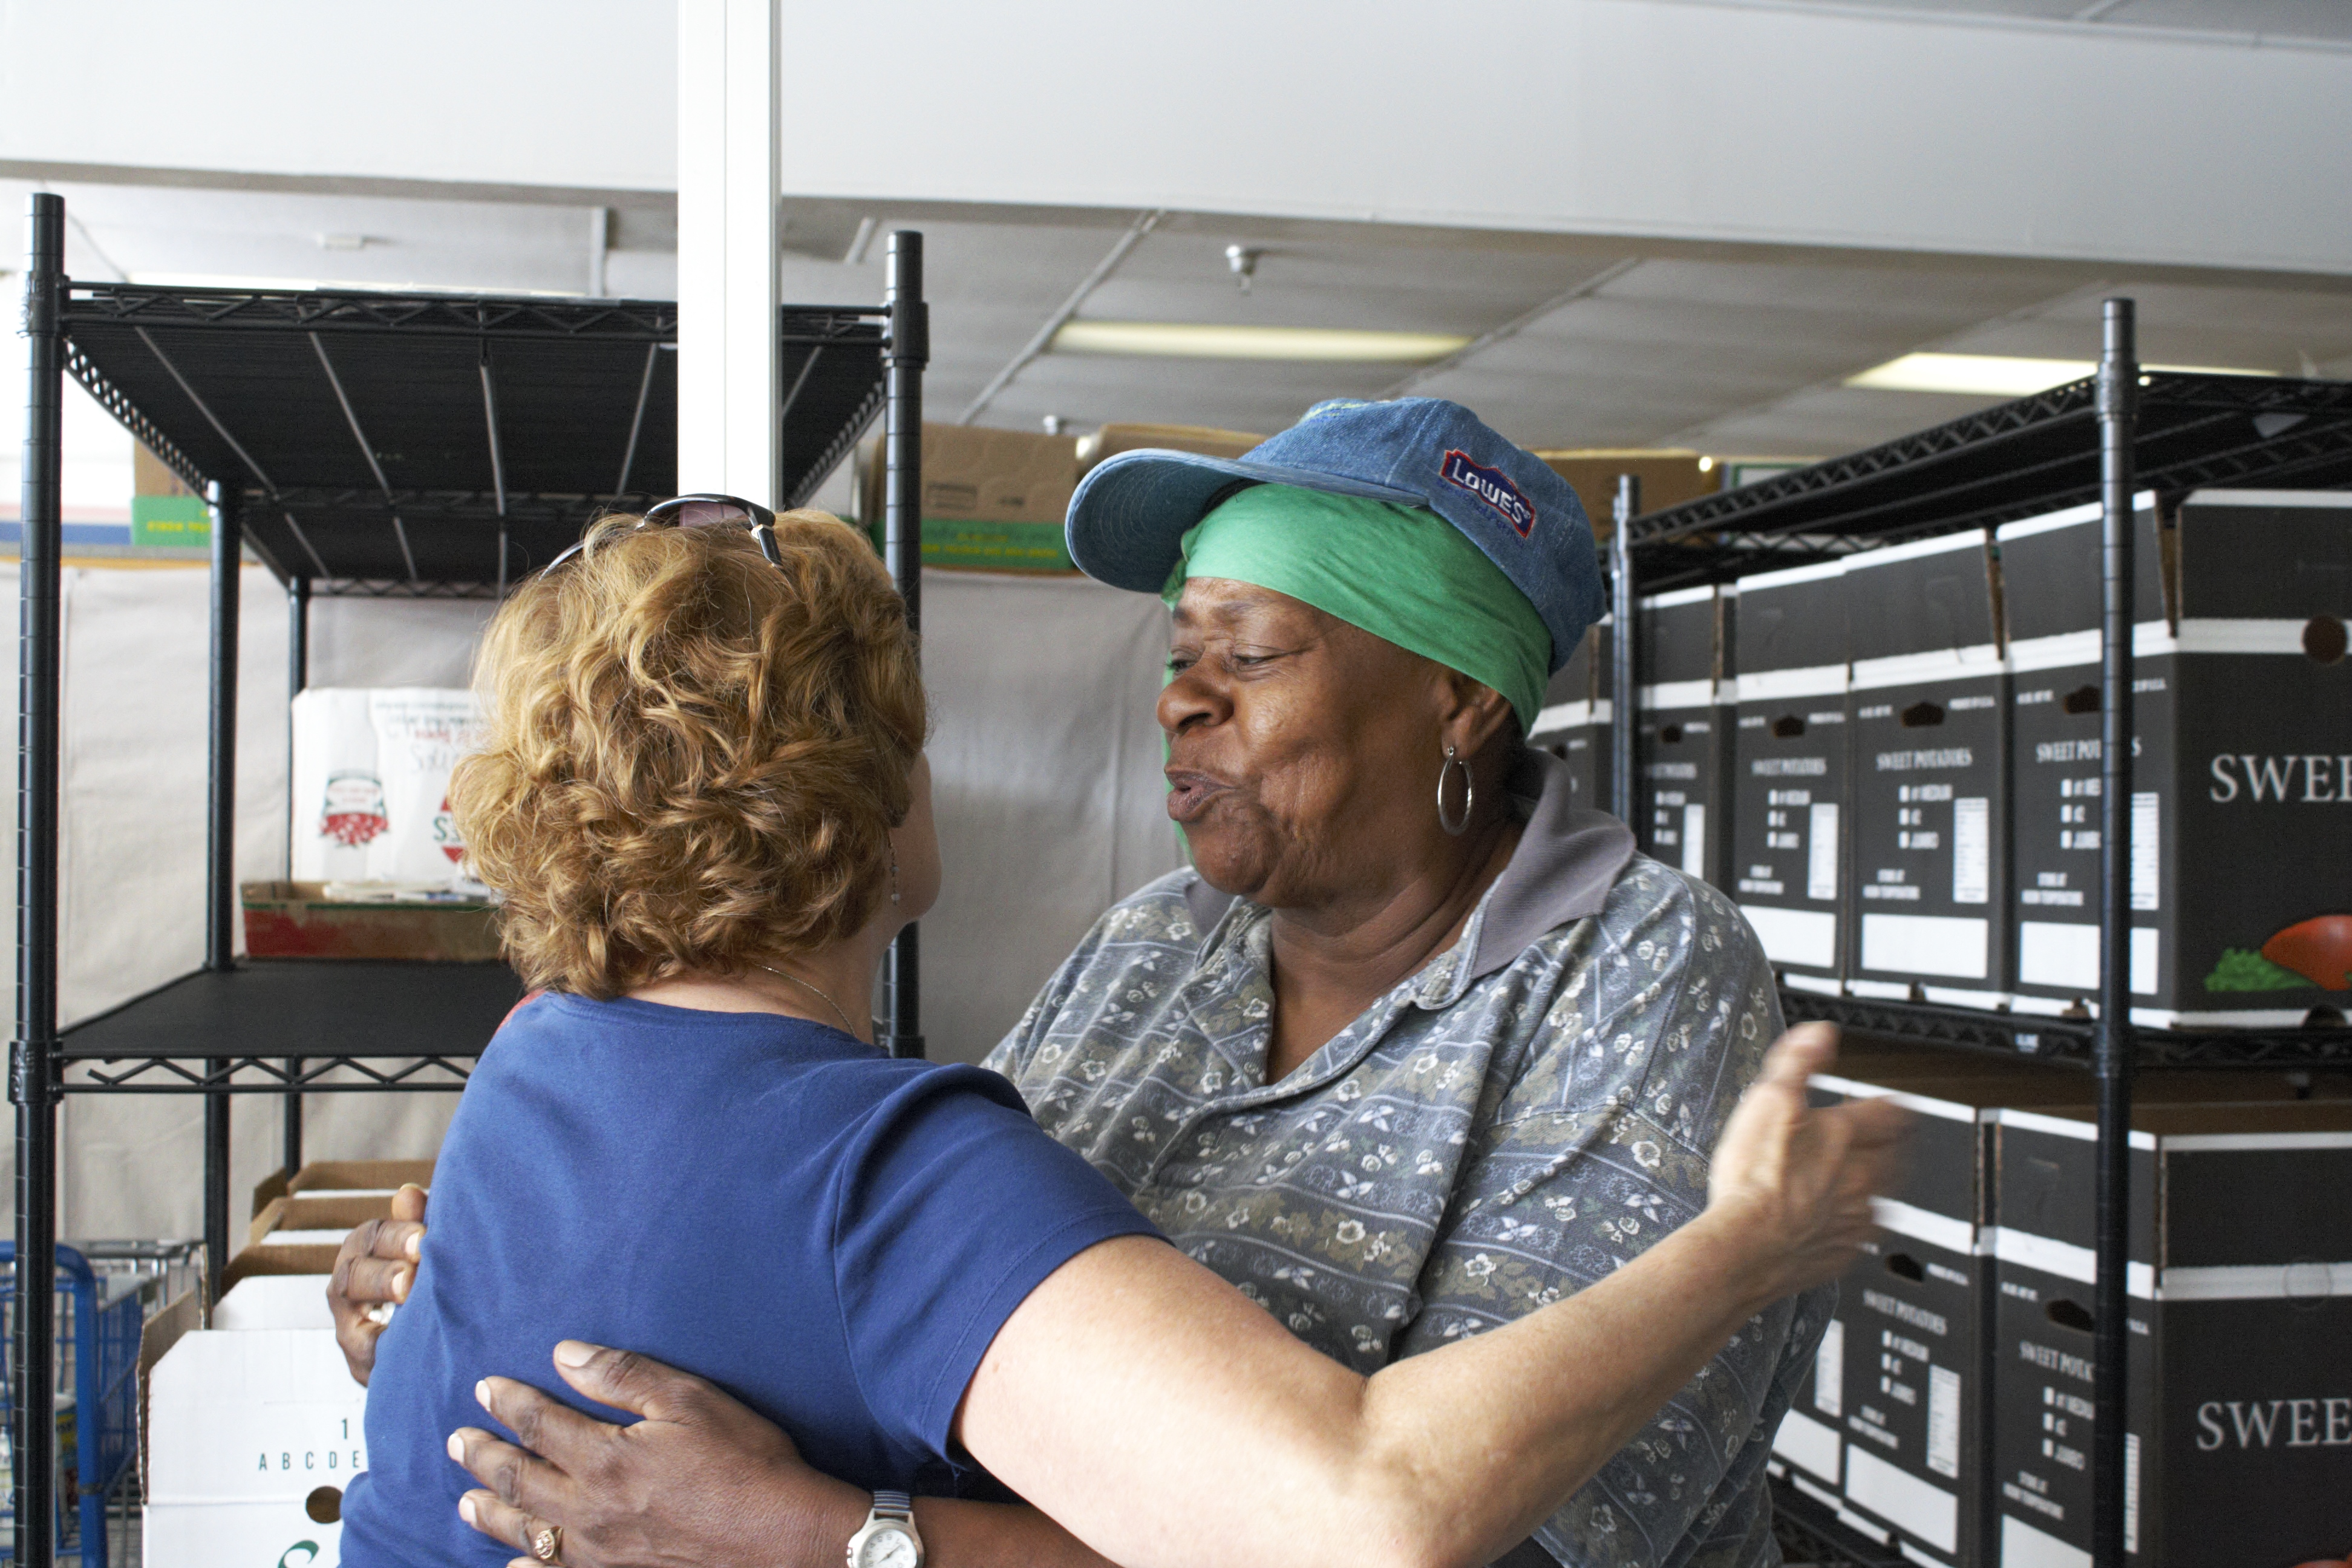 One woman hugs another woman in front of food pantry shelves..